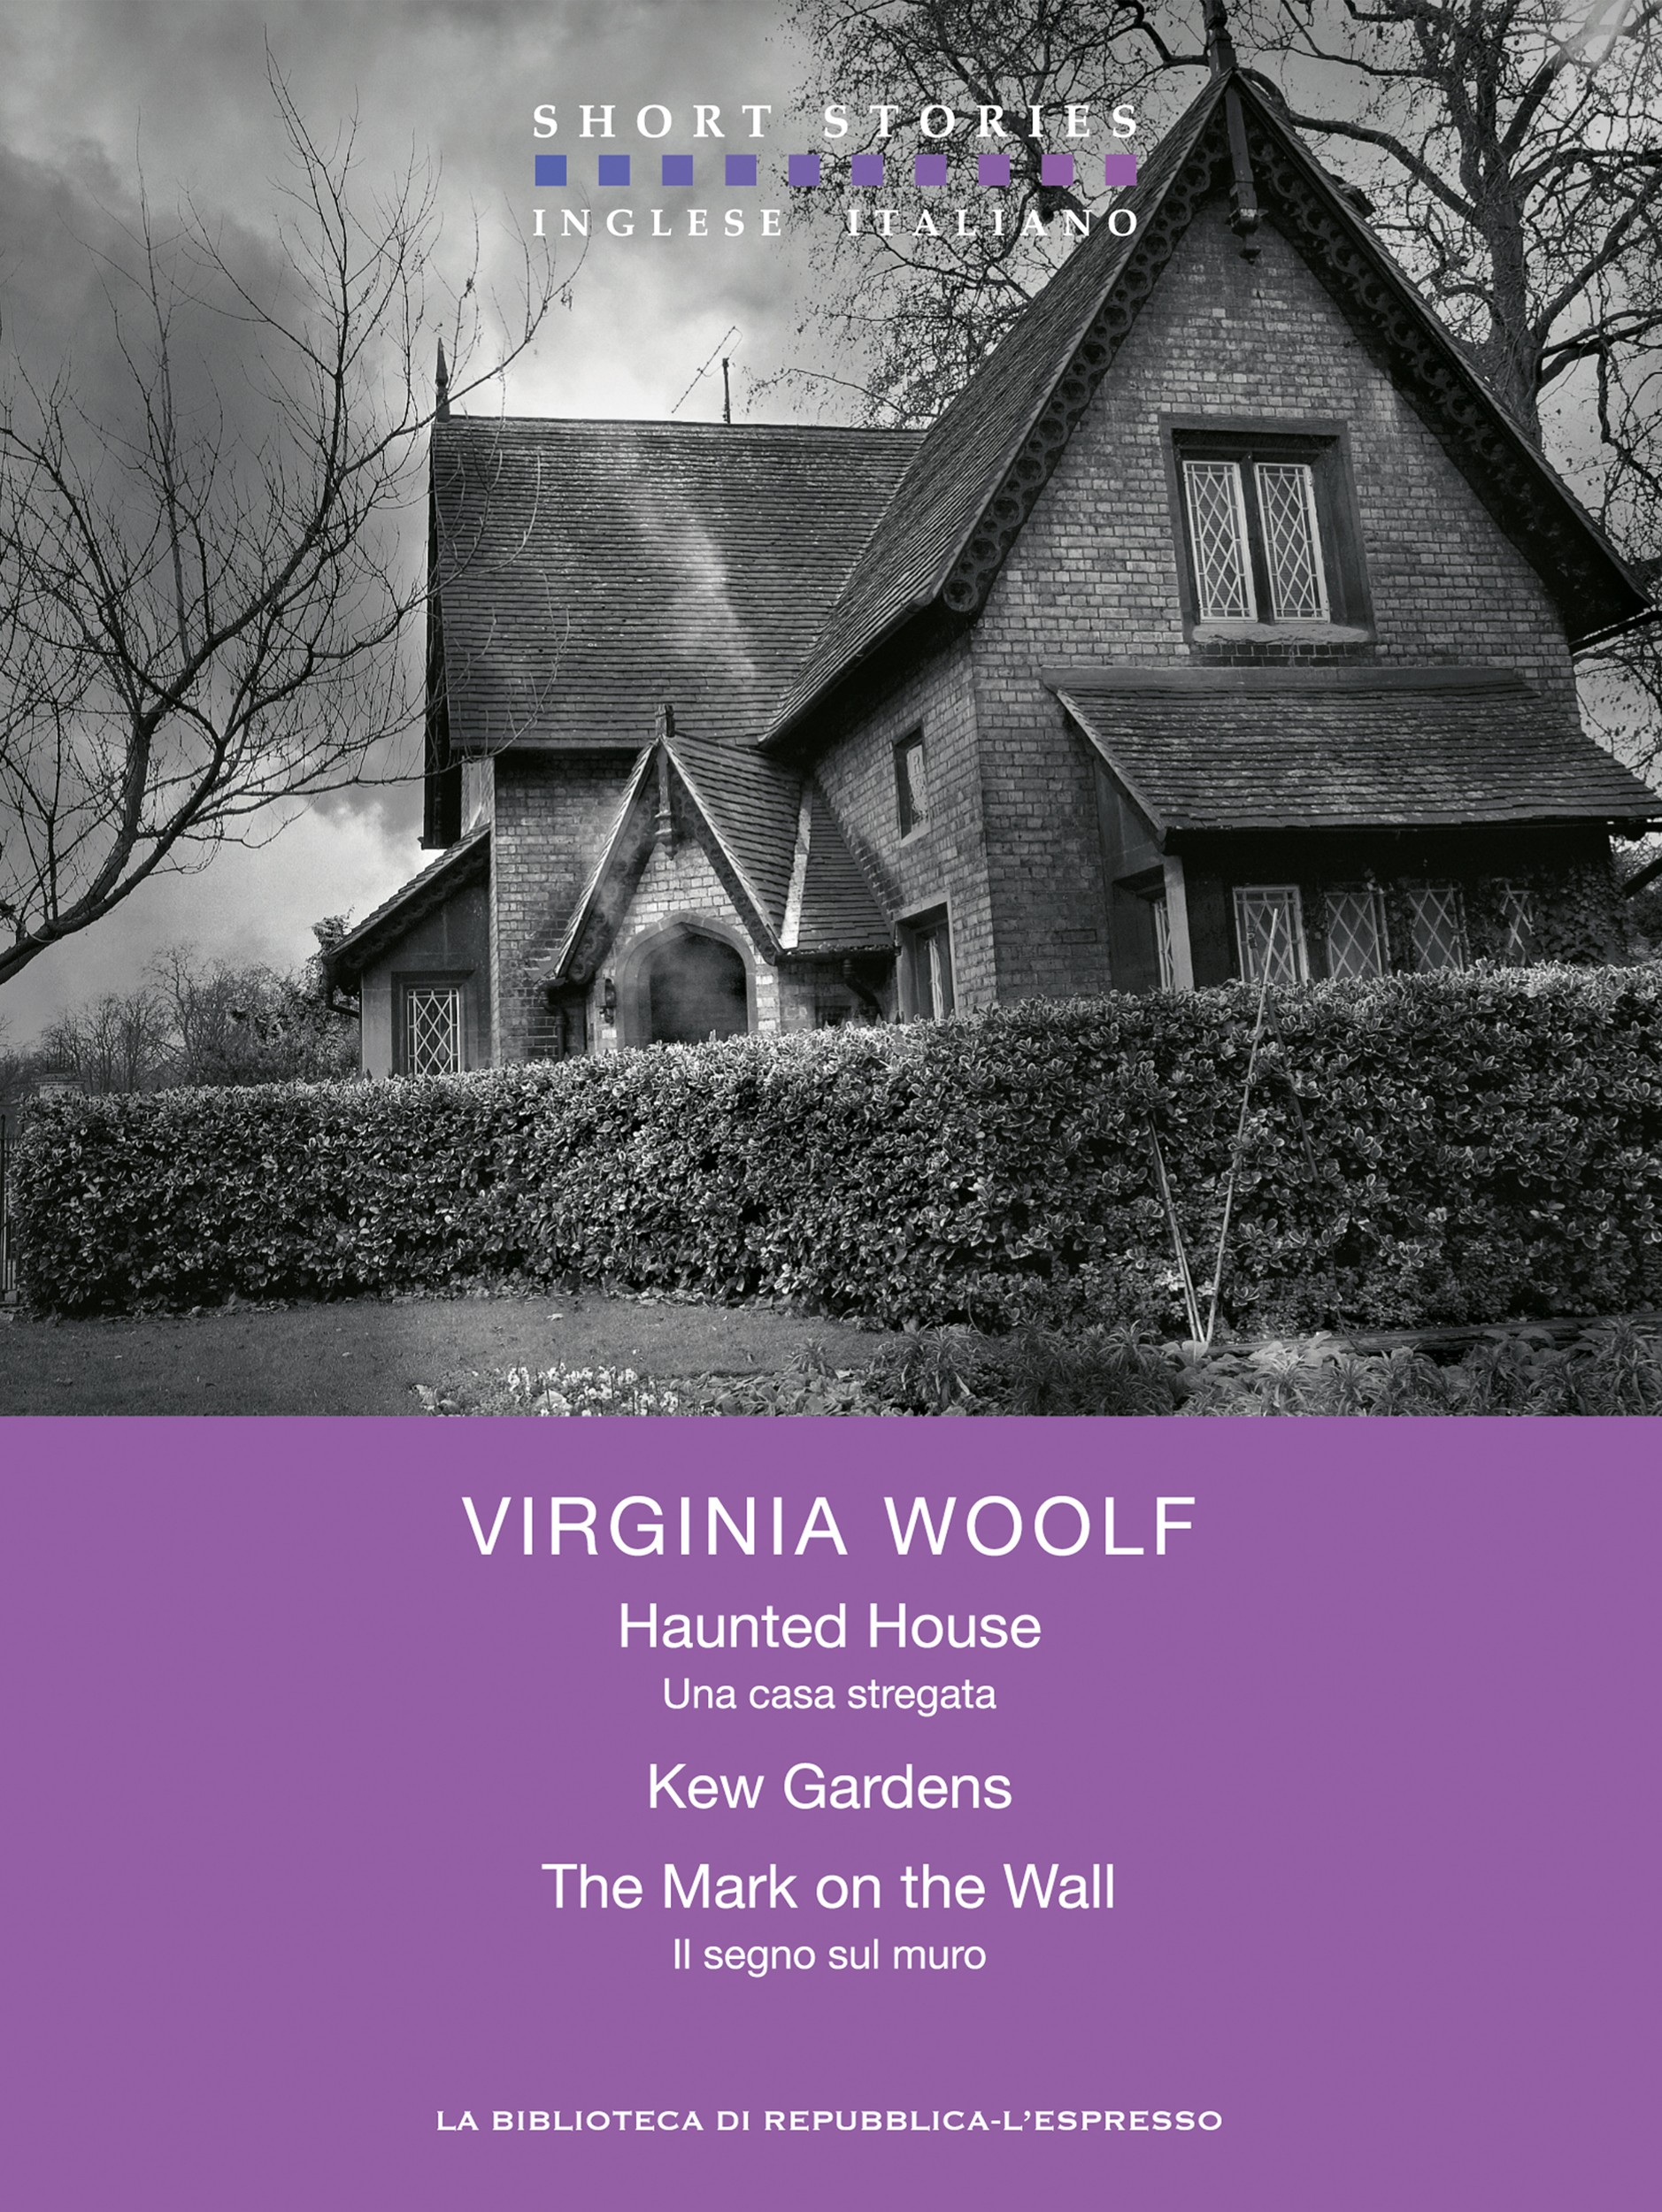 the modern ghost story in a haunted house a short story by virginia woolf Aickman, barnard, chetwynd-hayes & danby the fontana horror, ghost, tales of terror series' and beyond.